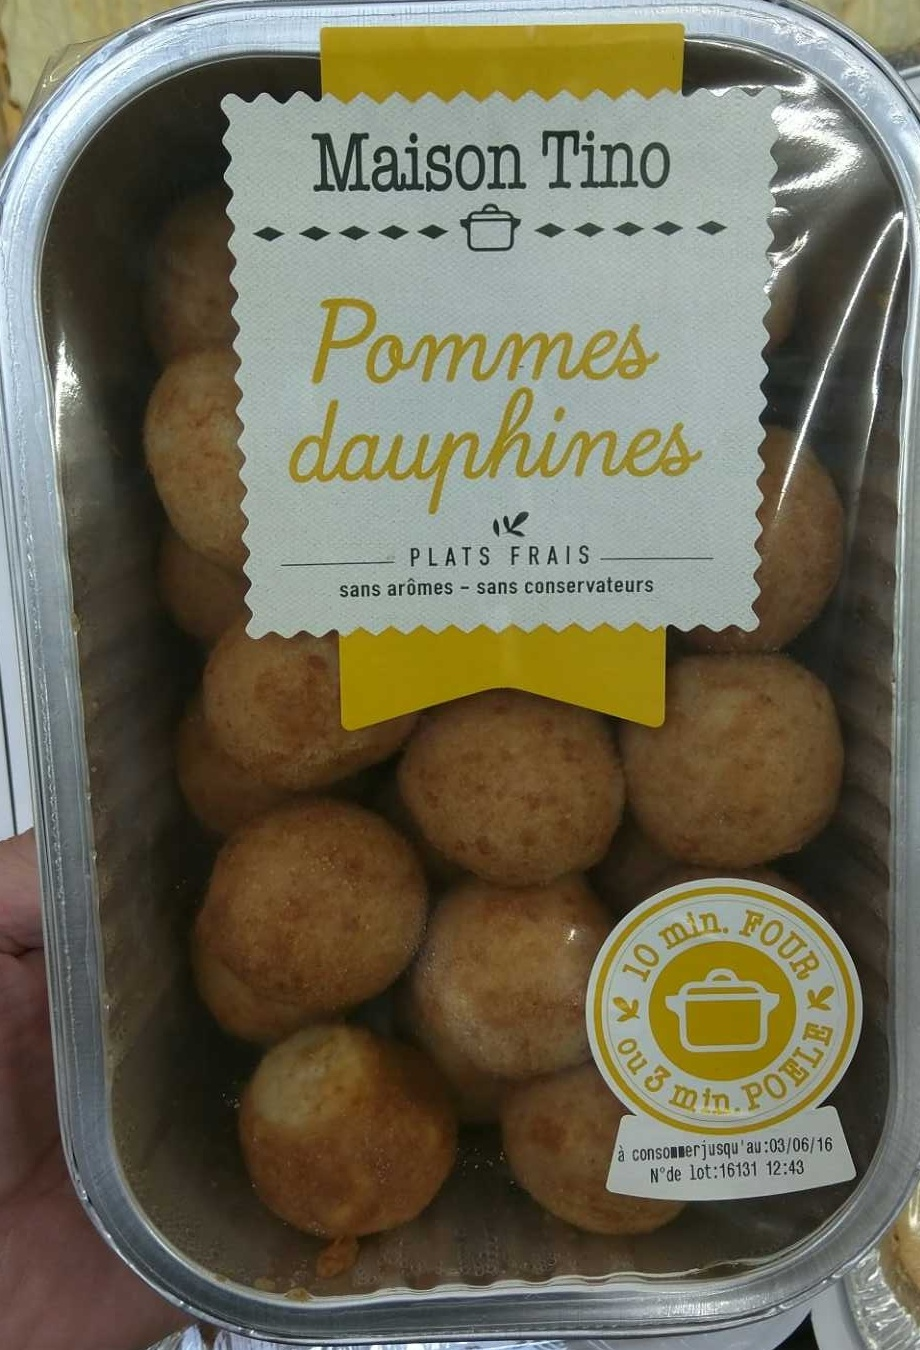 Pommes dauphine - Product - fr